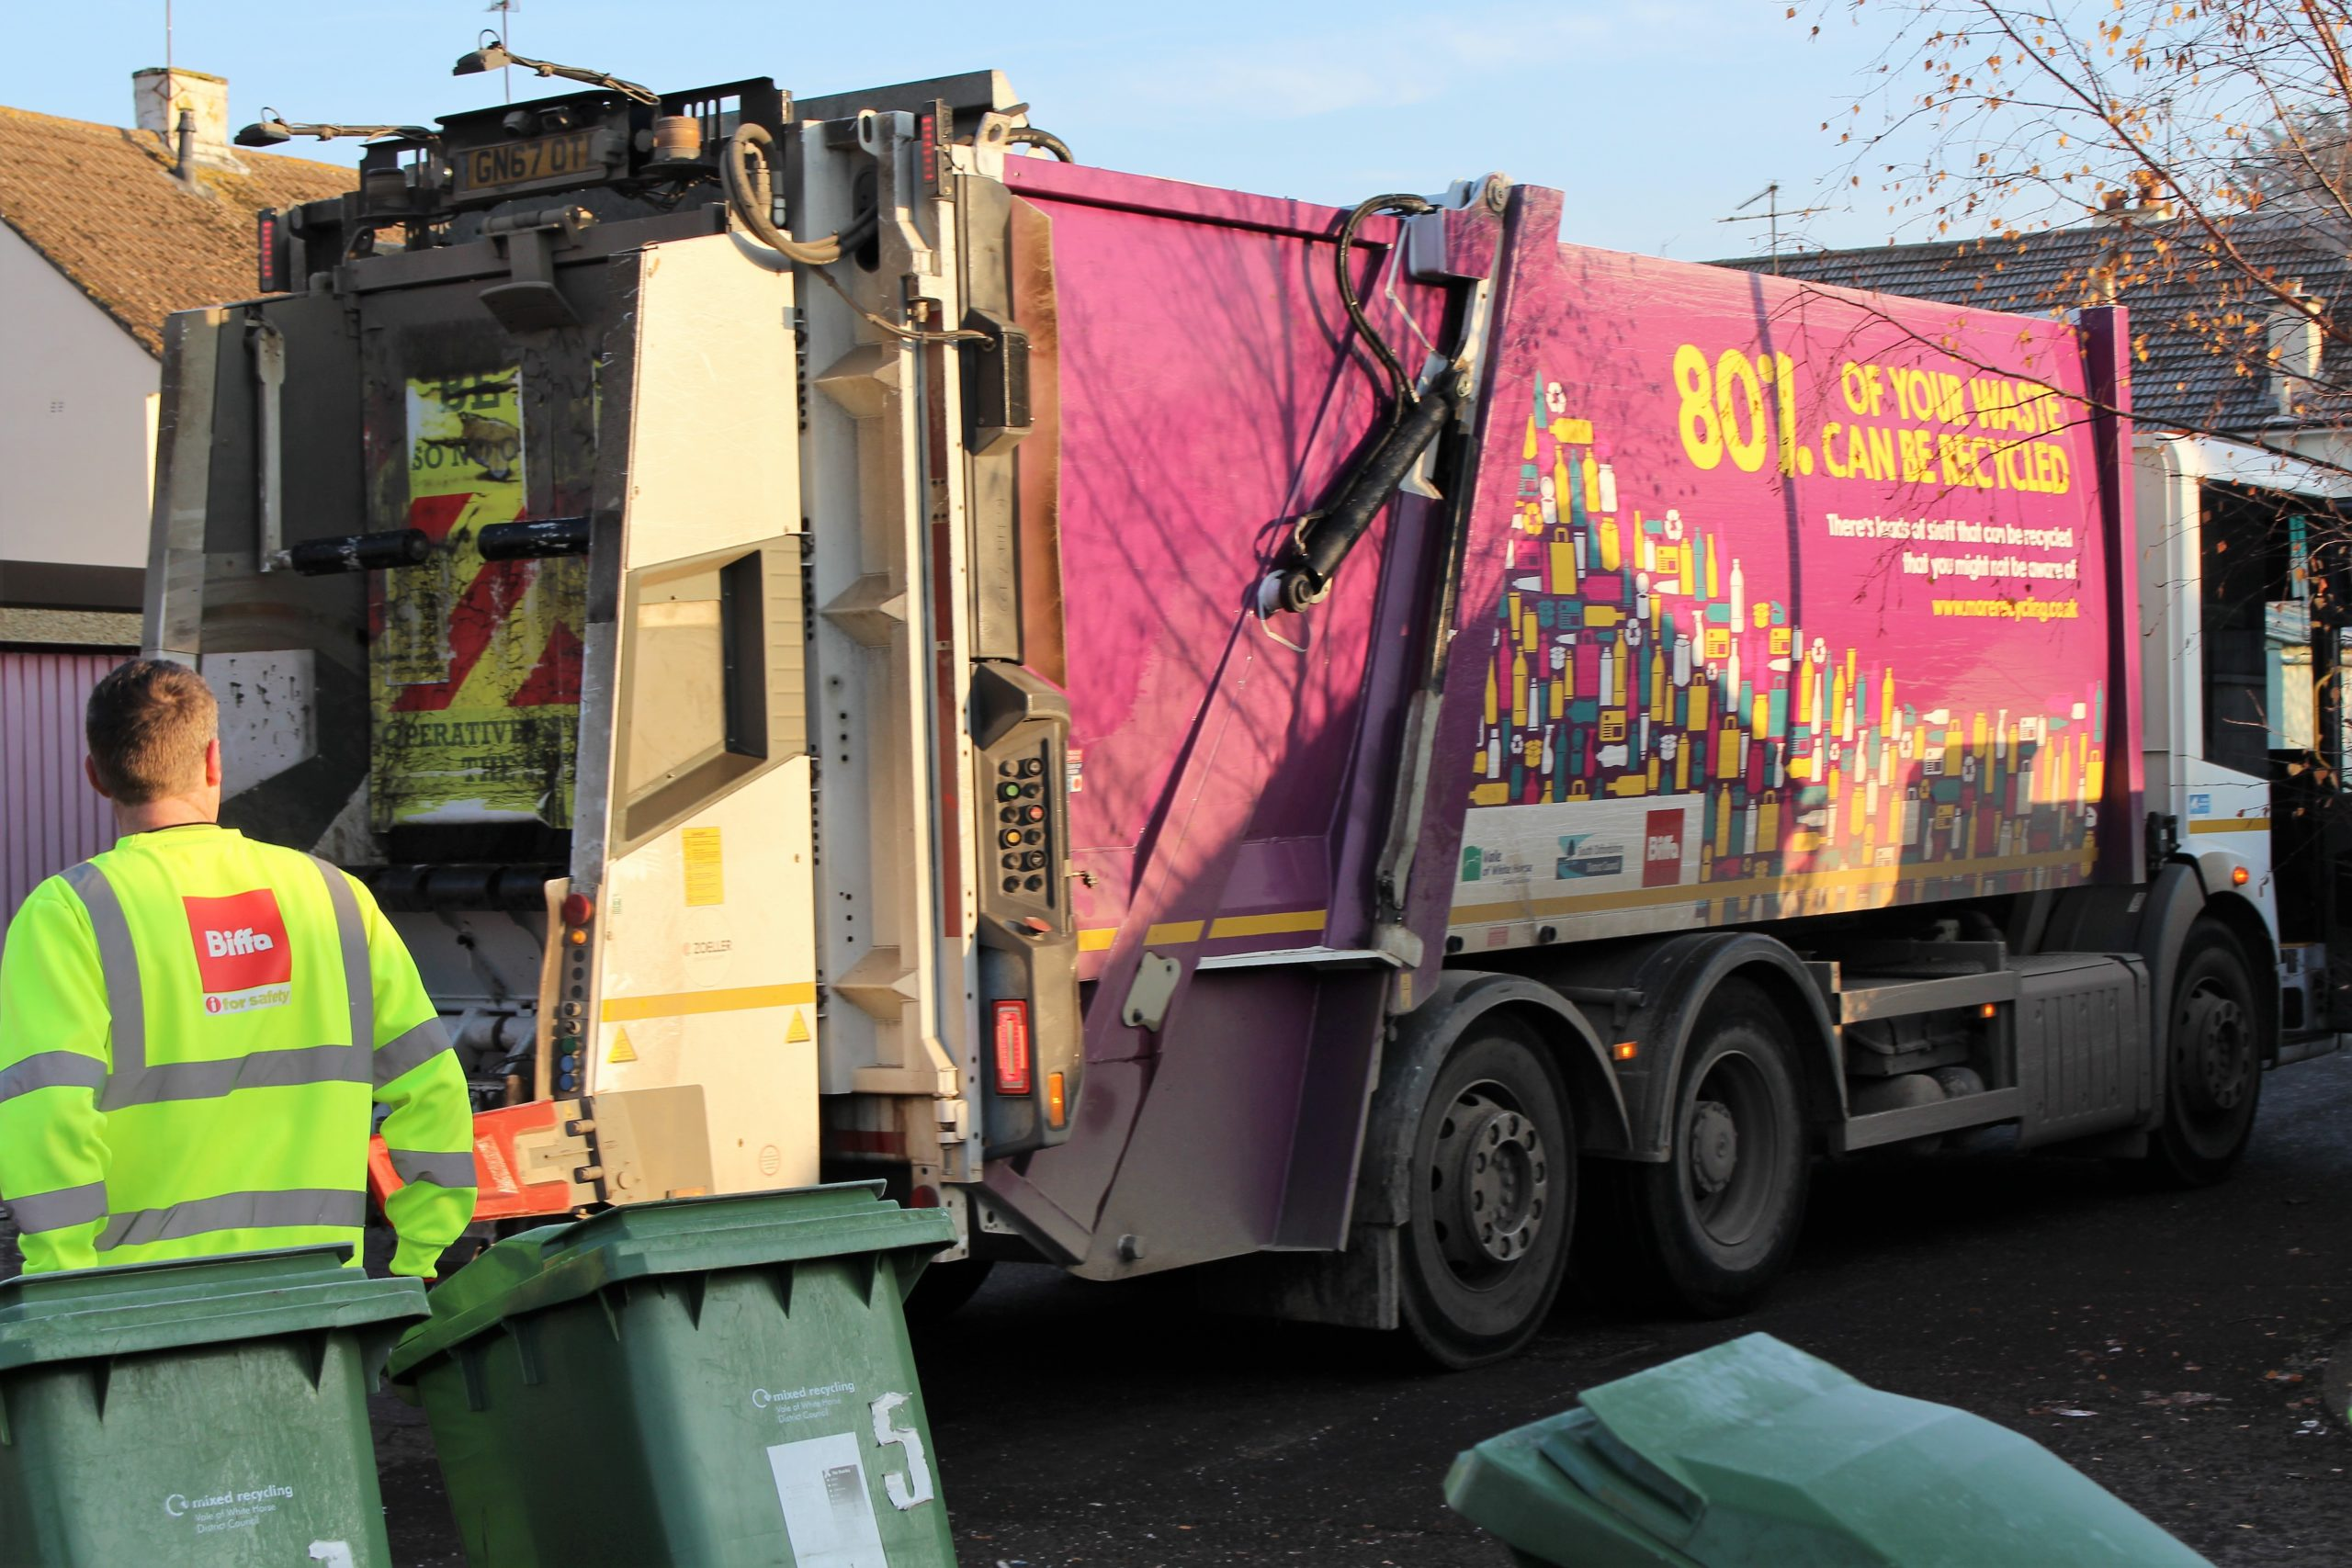 HGV drivers needed to join our bin crews